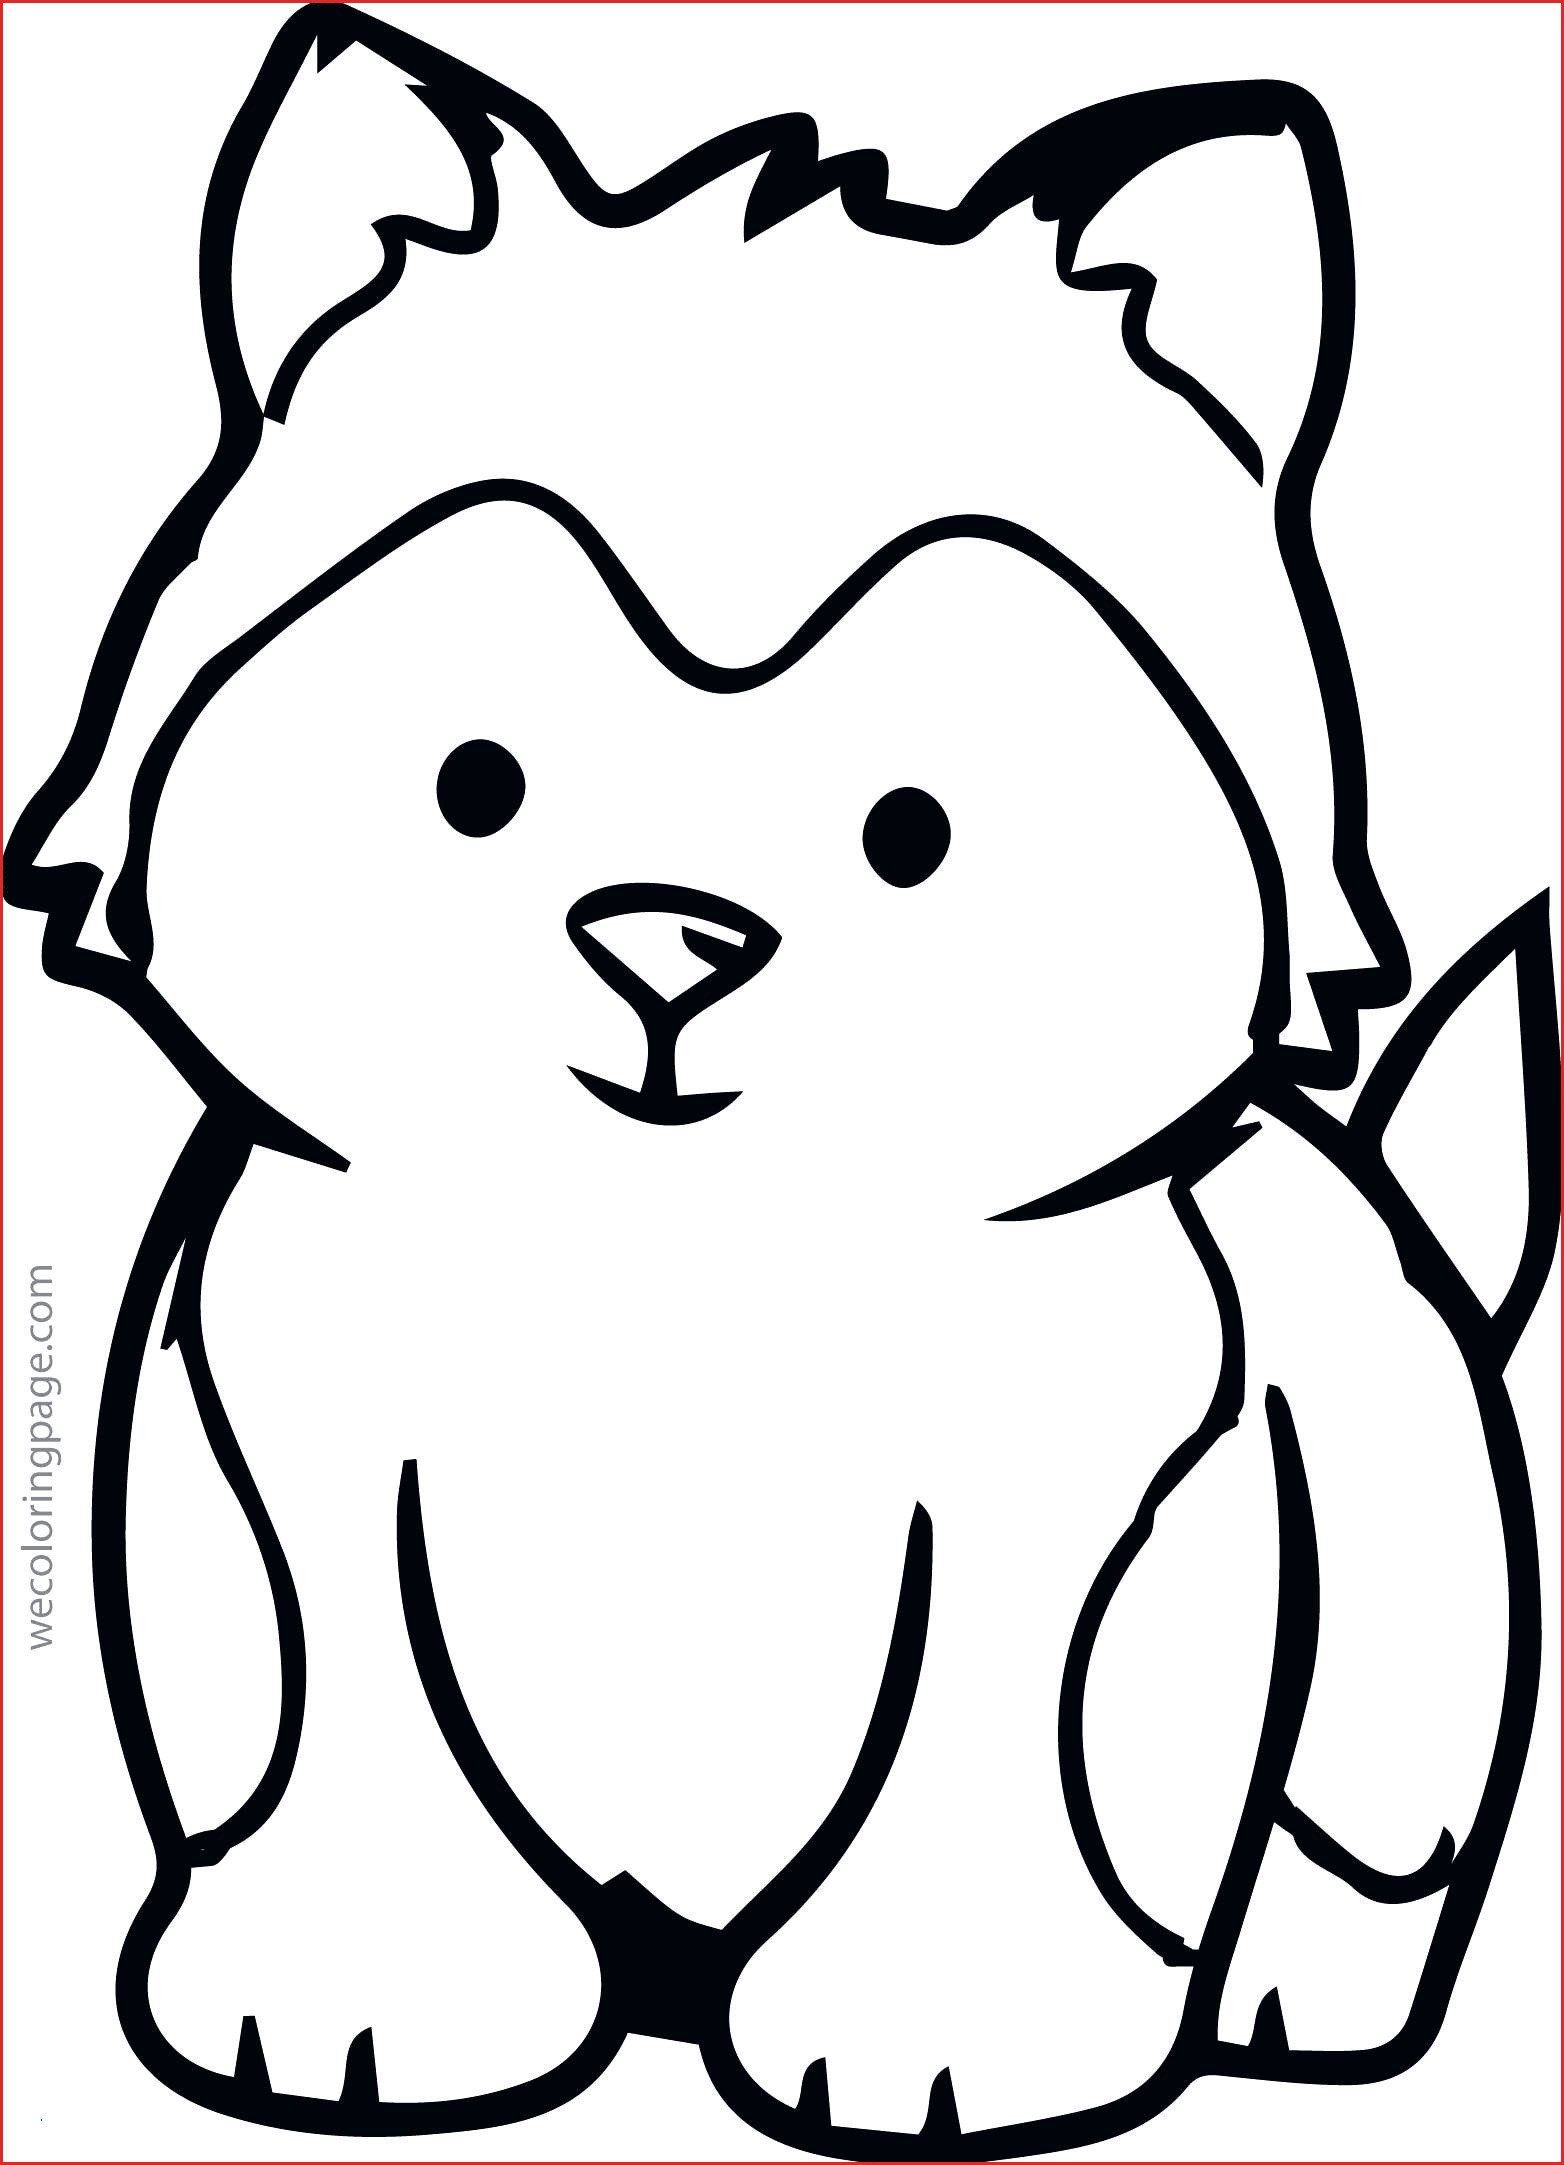 Animal Coloring Pages Free Printable Coloring Page Free Printable Animal Coloring Pages In 2020 Farm Animal Coloring Pages Dog Coloring Page Zoo Animal Coloring Pages